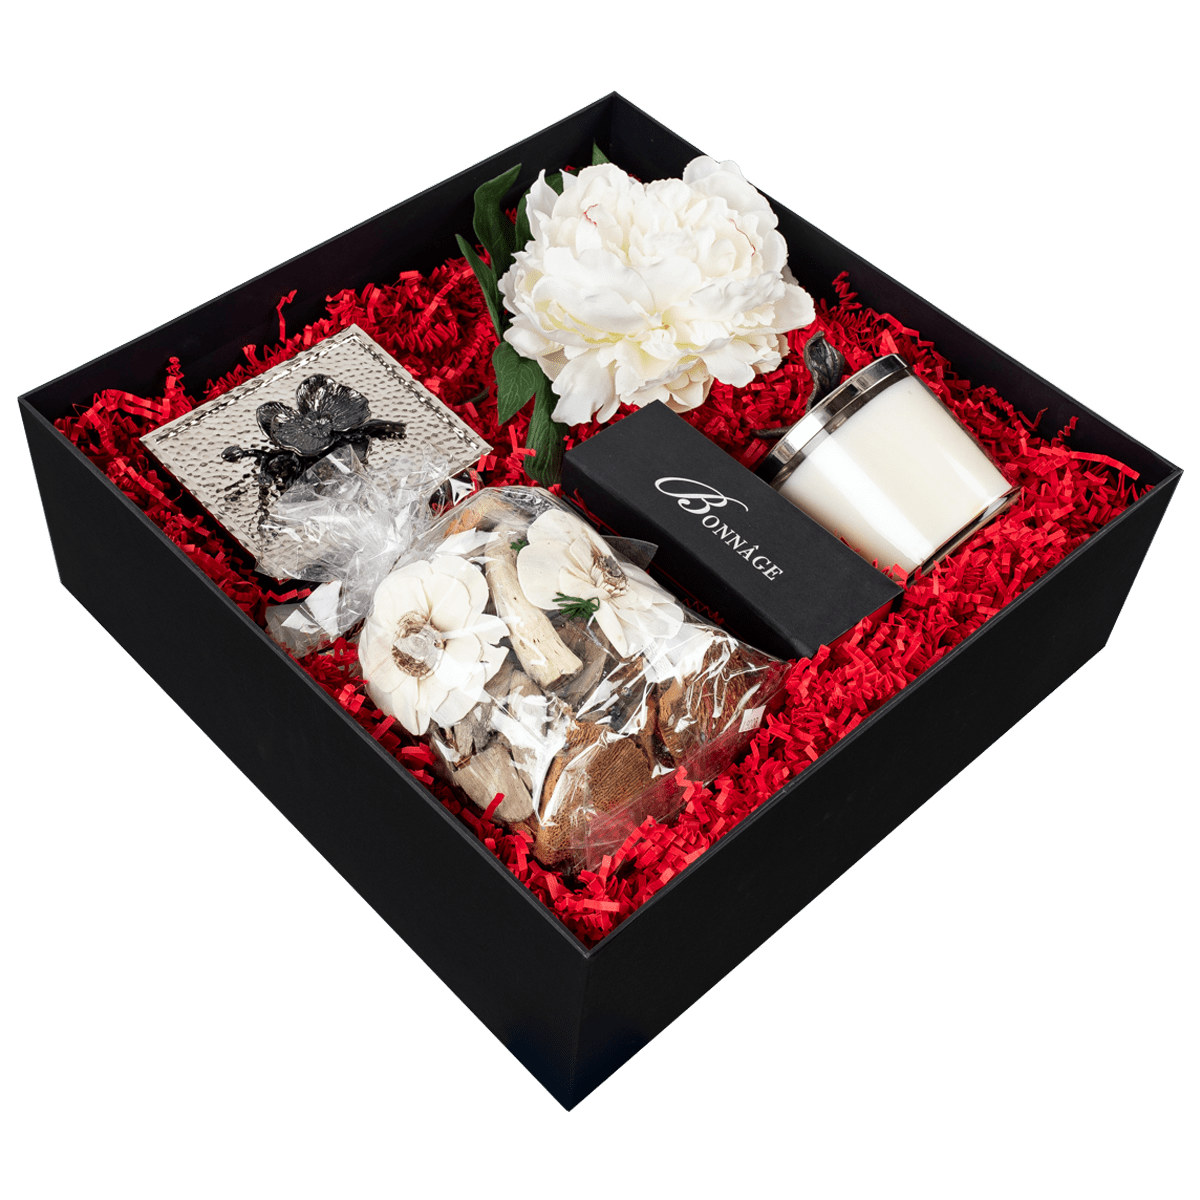 Luxury Gifts for Mom, Give Mom the Gift of Luxury this Mothers Day